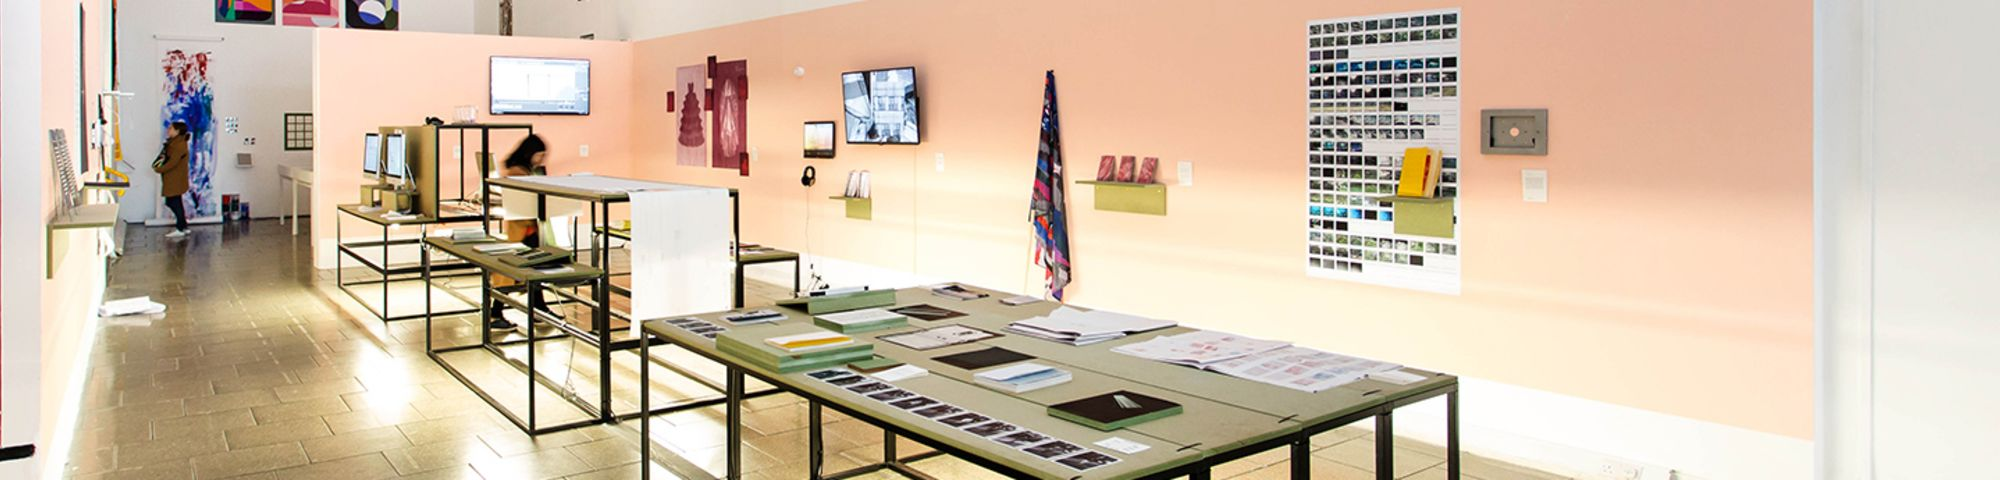 Exhibition view of a display table and other mounted work by MA Graphic Media Design